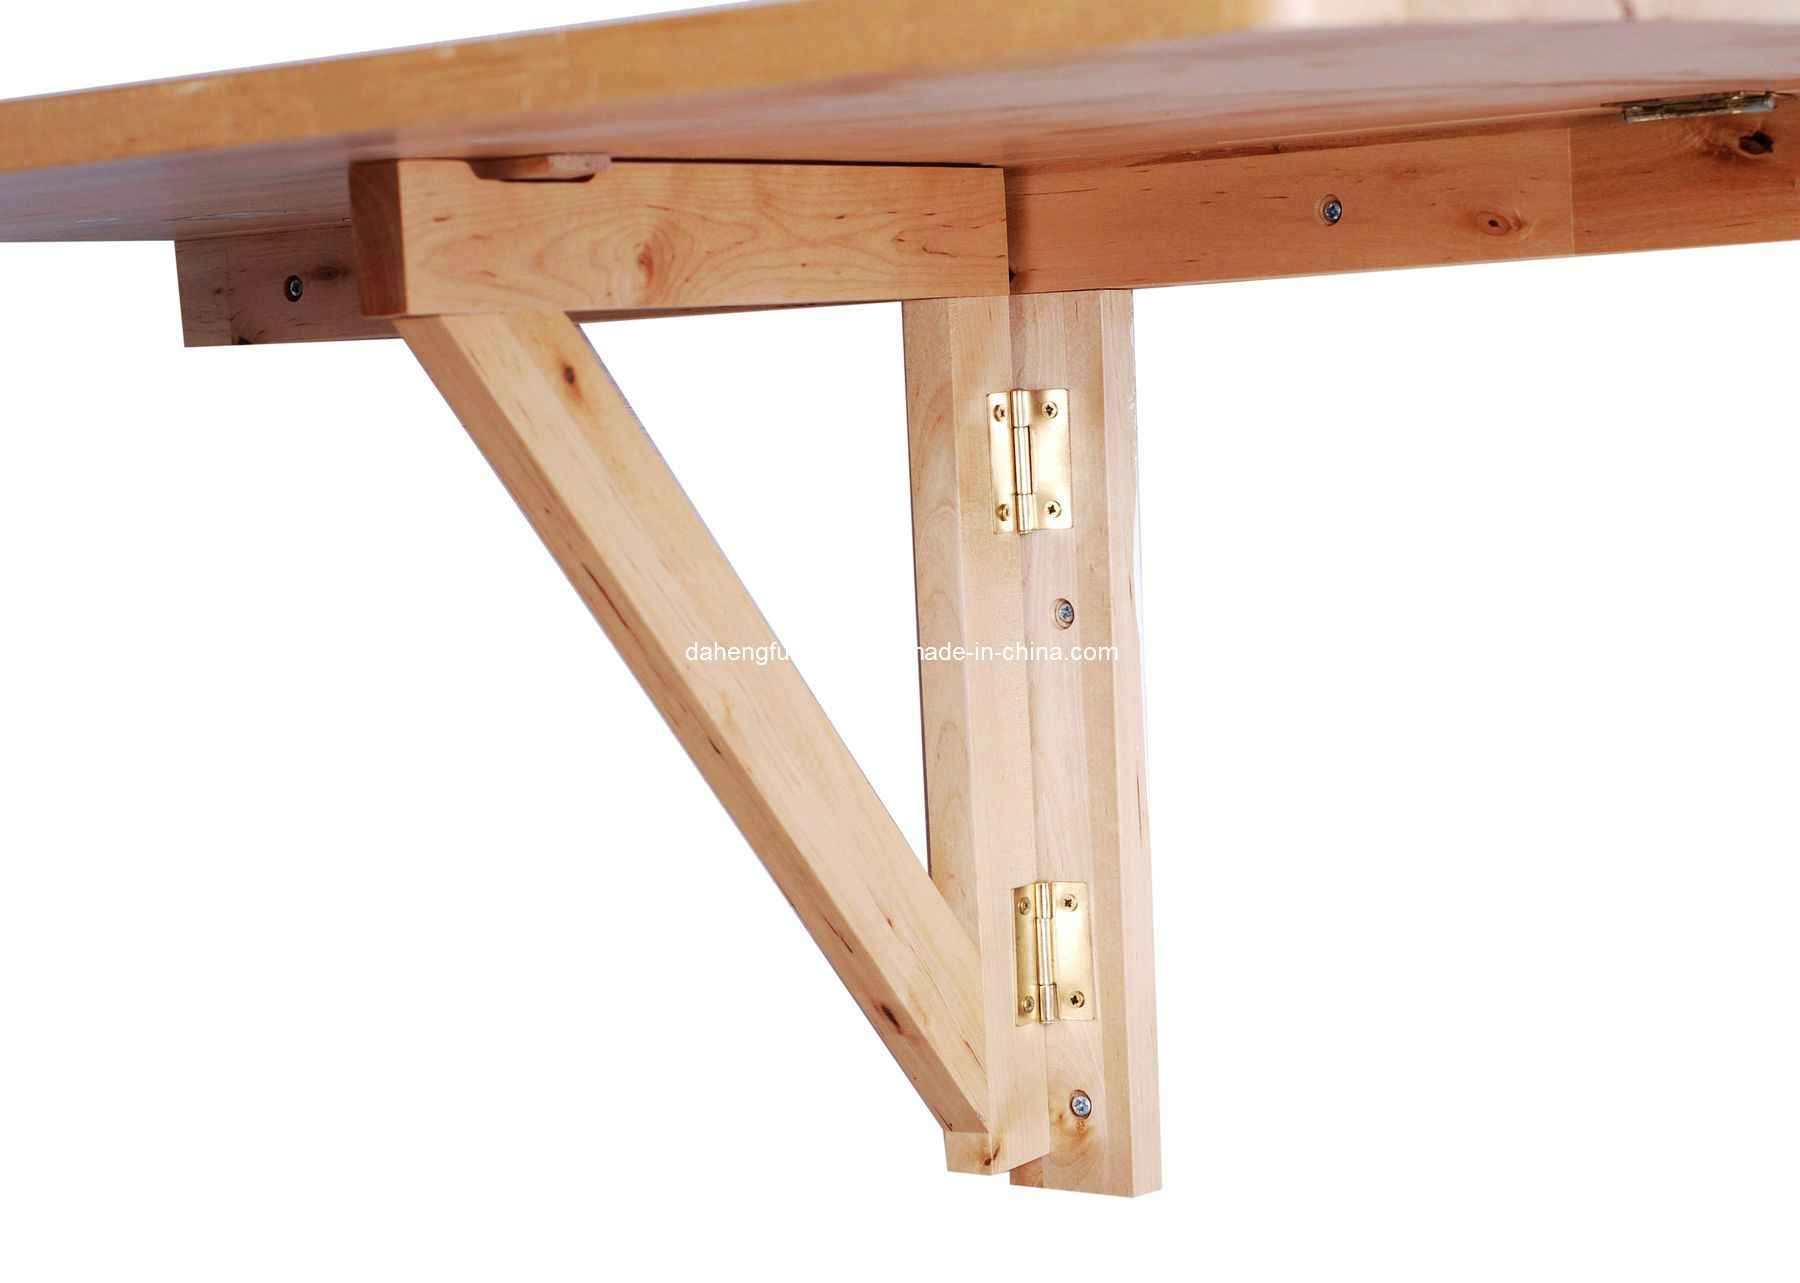 Built In Folding Table Use This Type Of Hinge For Fold Down Built In Deck Bar